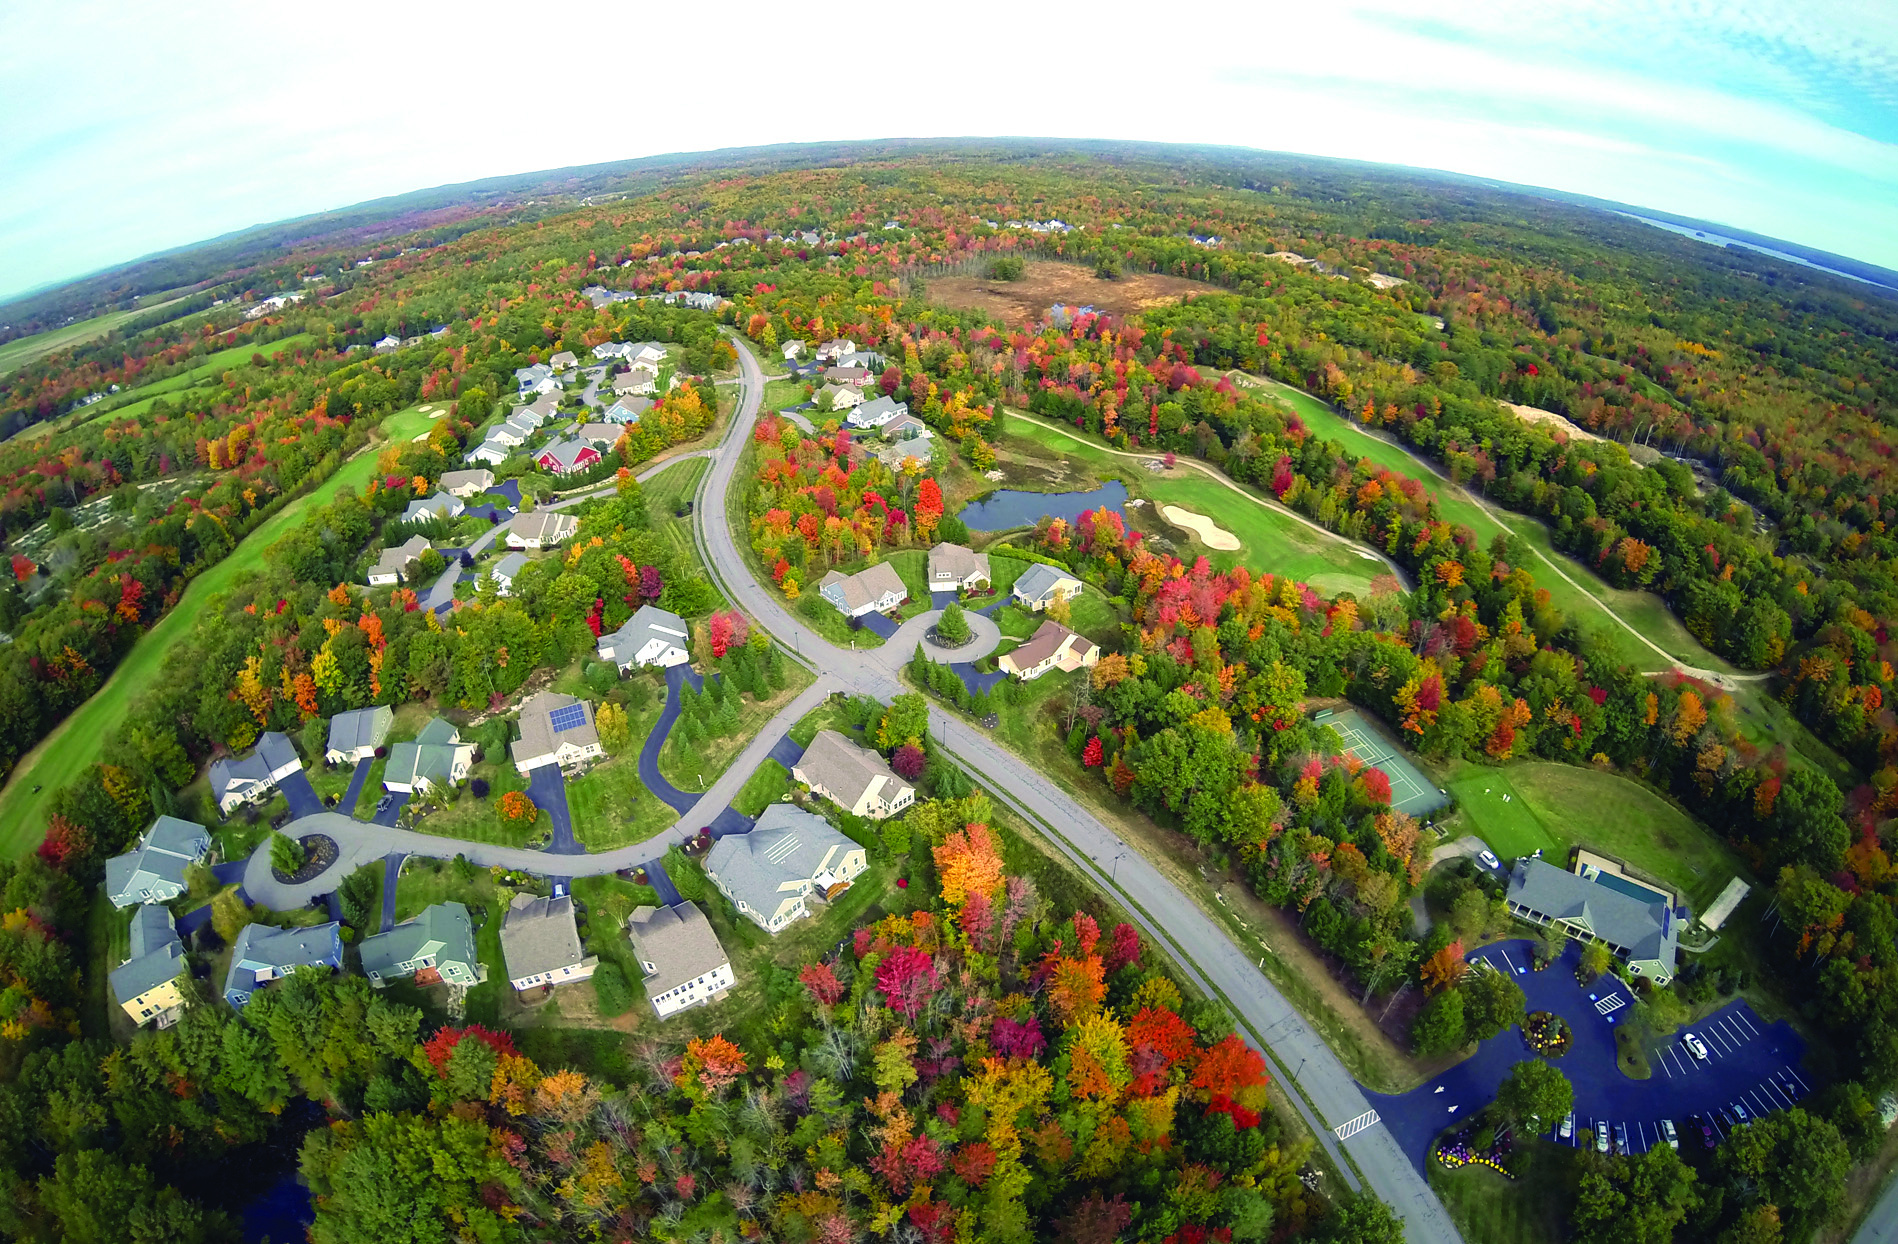 Highland Green in Topsham integrates conservation land into the community, with a third of the 635-acre campus preserved as open space. Photo courtesy of Highland Green.